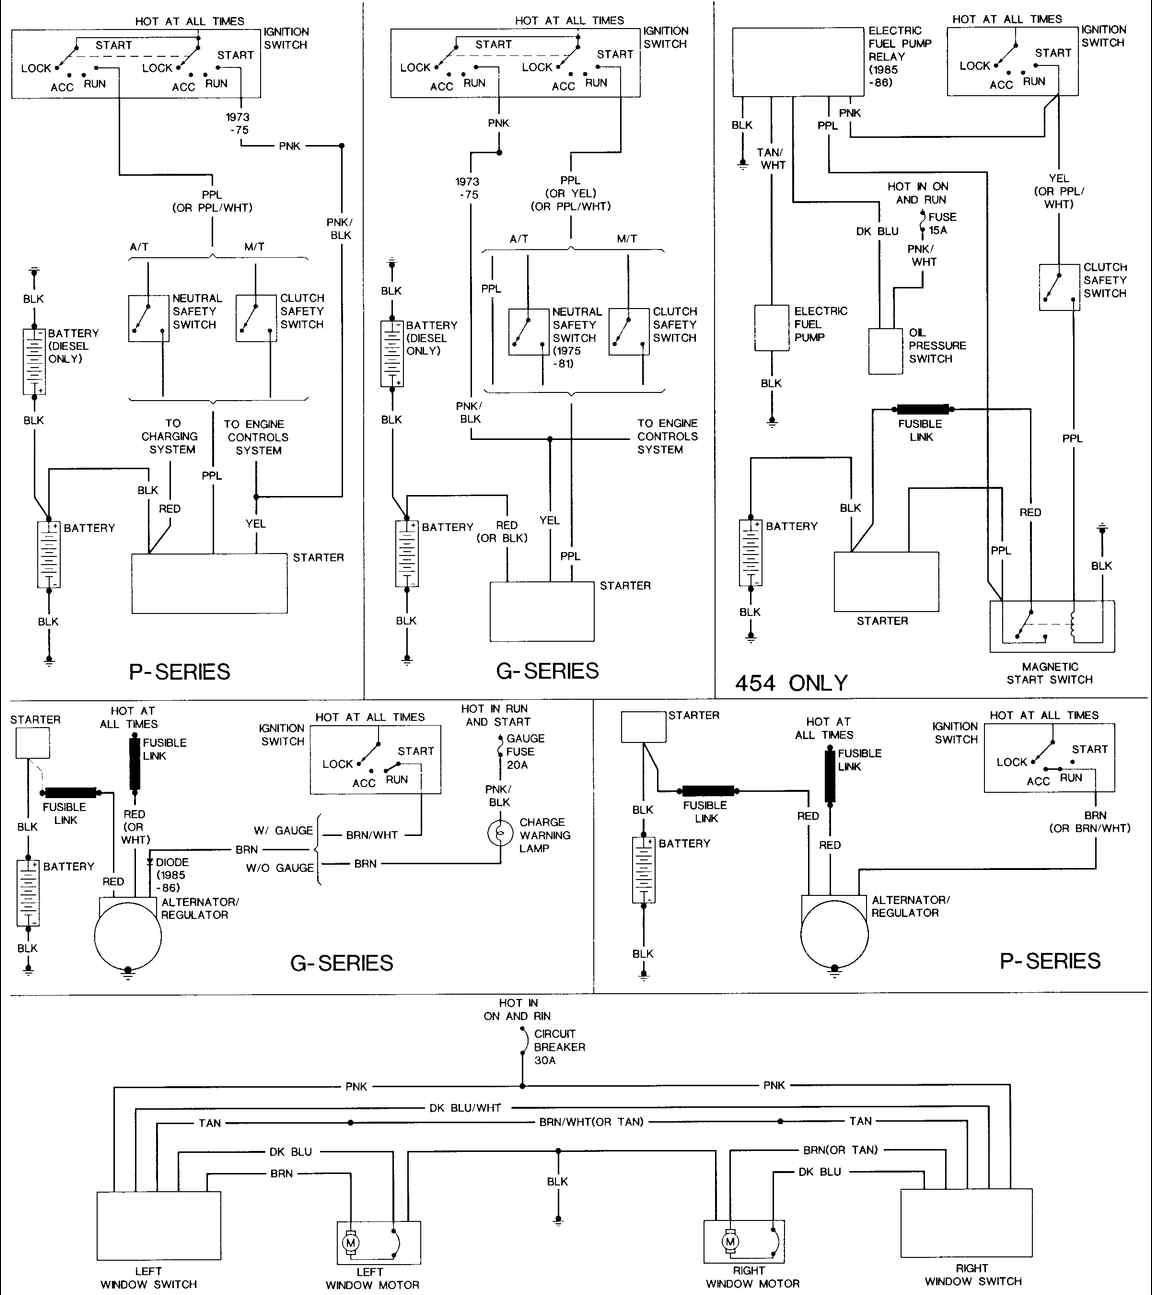 1979 gmc wiring diagram have a 1979 gmc vandura van--just put brand new battery in ... 1979 kz400 wiring diagram